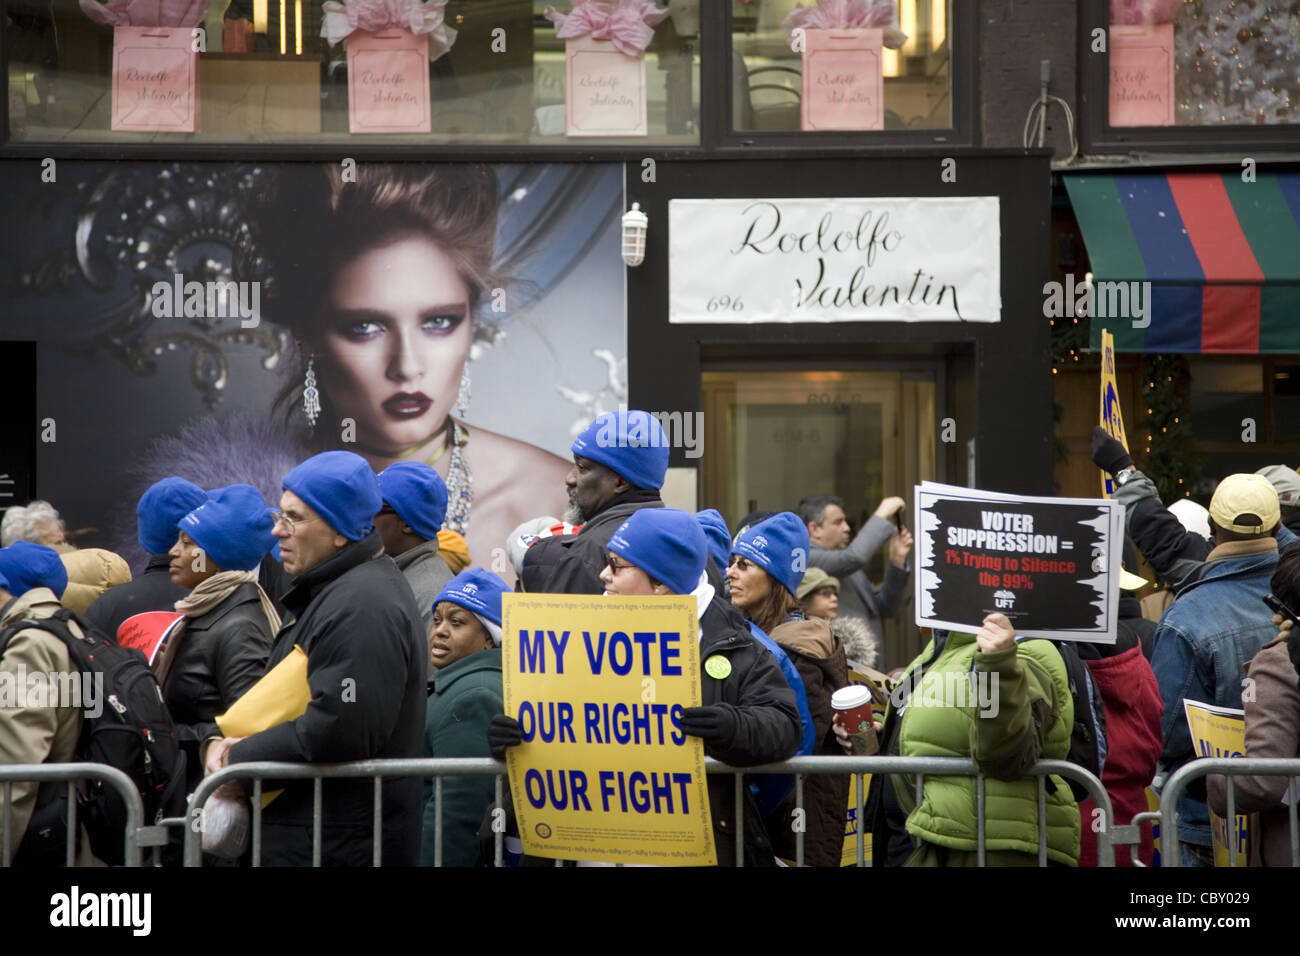 Union members in NYC march and demonstrate against the Koch Brothers payed influence on the manipulation of voting - Stock Image